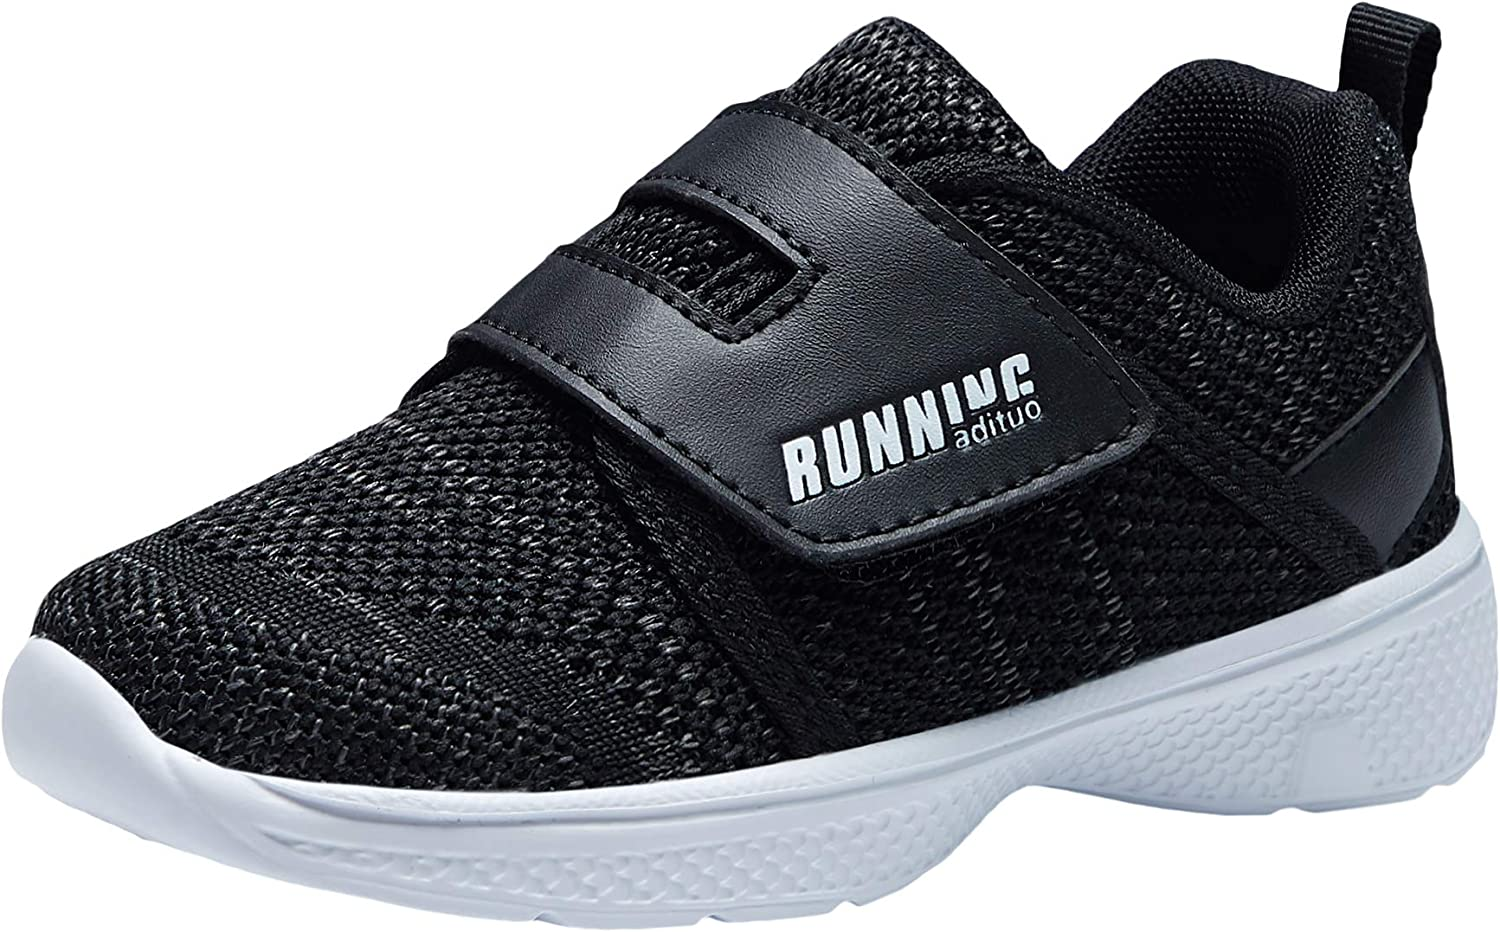 Amazon.com | adituo Toddler/Little Kid Boys Girls Lightweight Breathable  Strap Athletic Sneakers Running Walking Sports Shoes | Sneakers